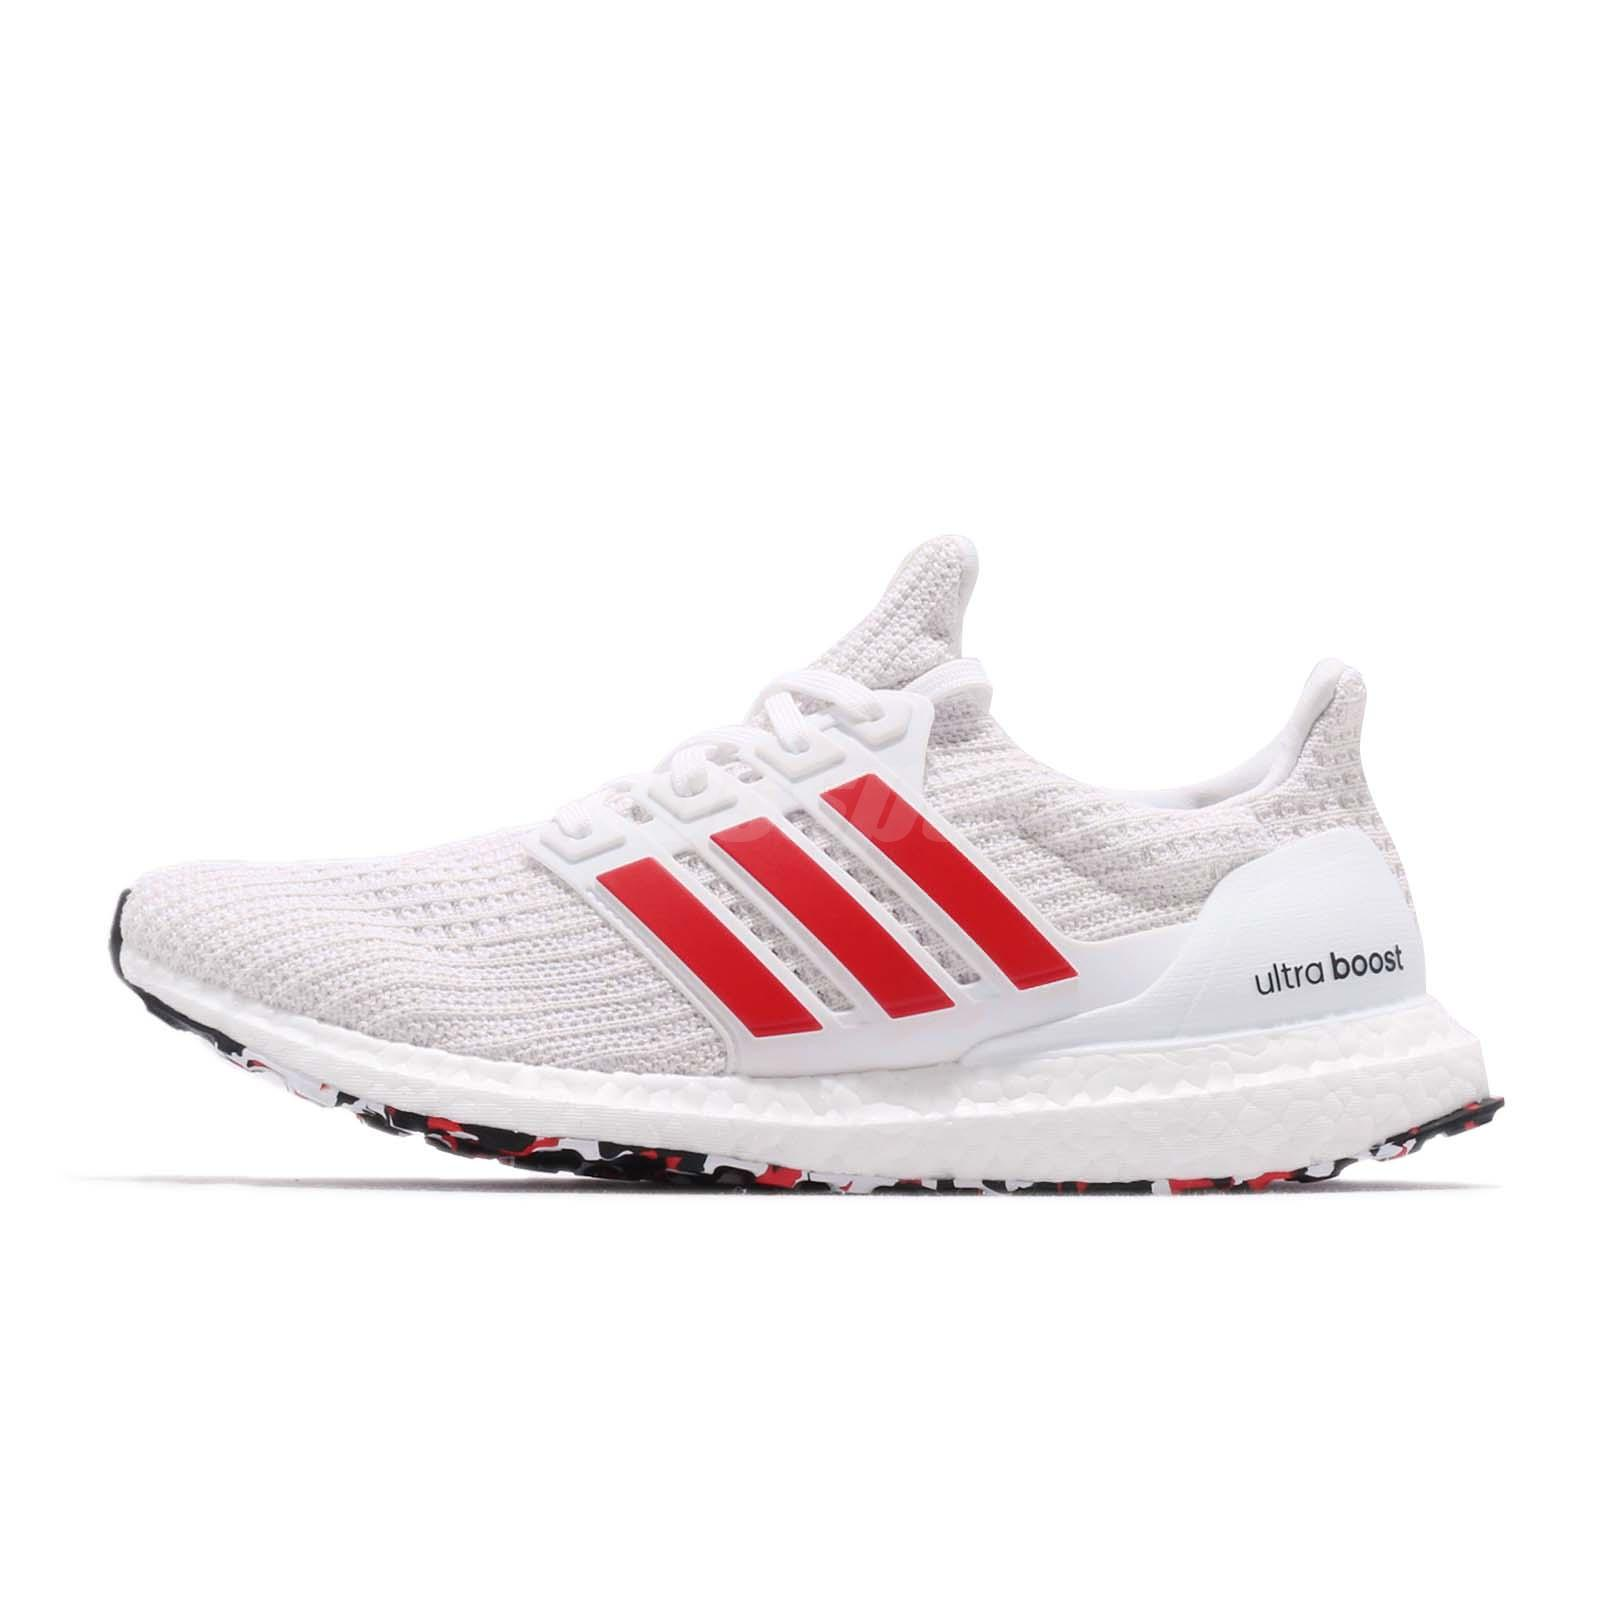 3c3f2331c adidas UltraBoost 4.0 Active Red Stripes White Men Running Shoes Sneakers  DB3199